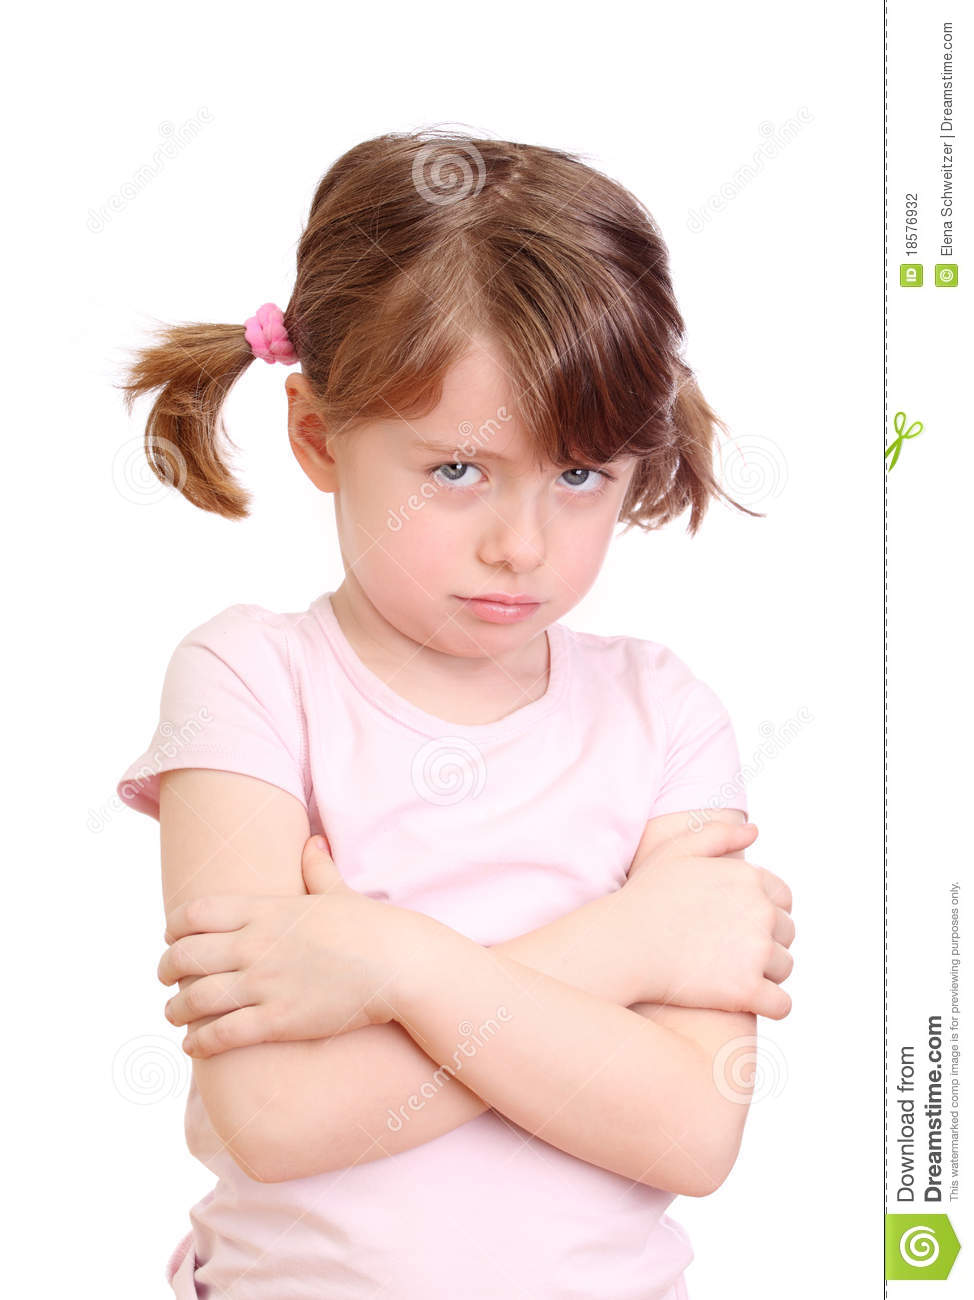 Angry Little Girl Stock Photography - Image: 18576932